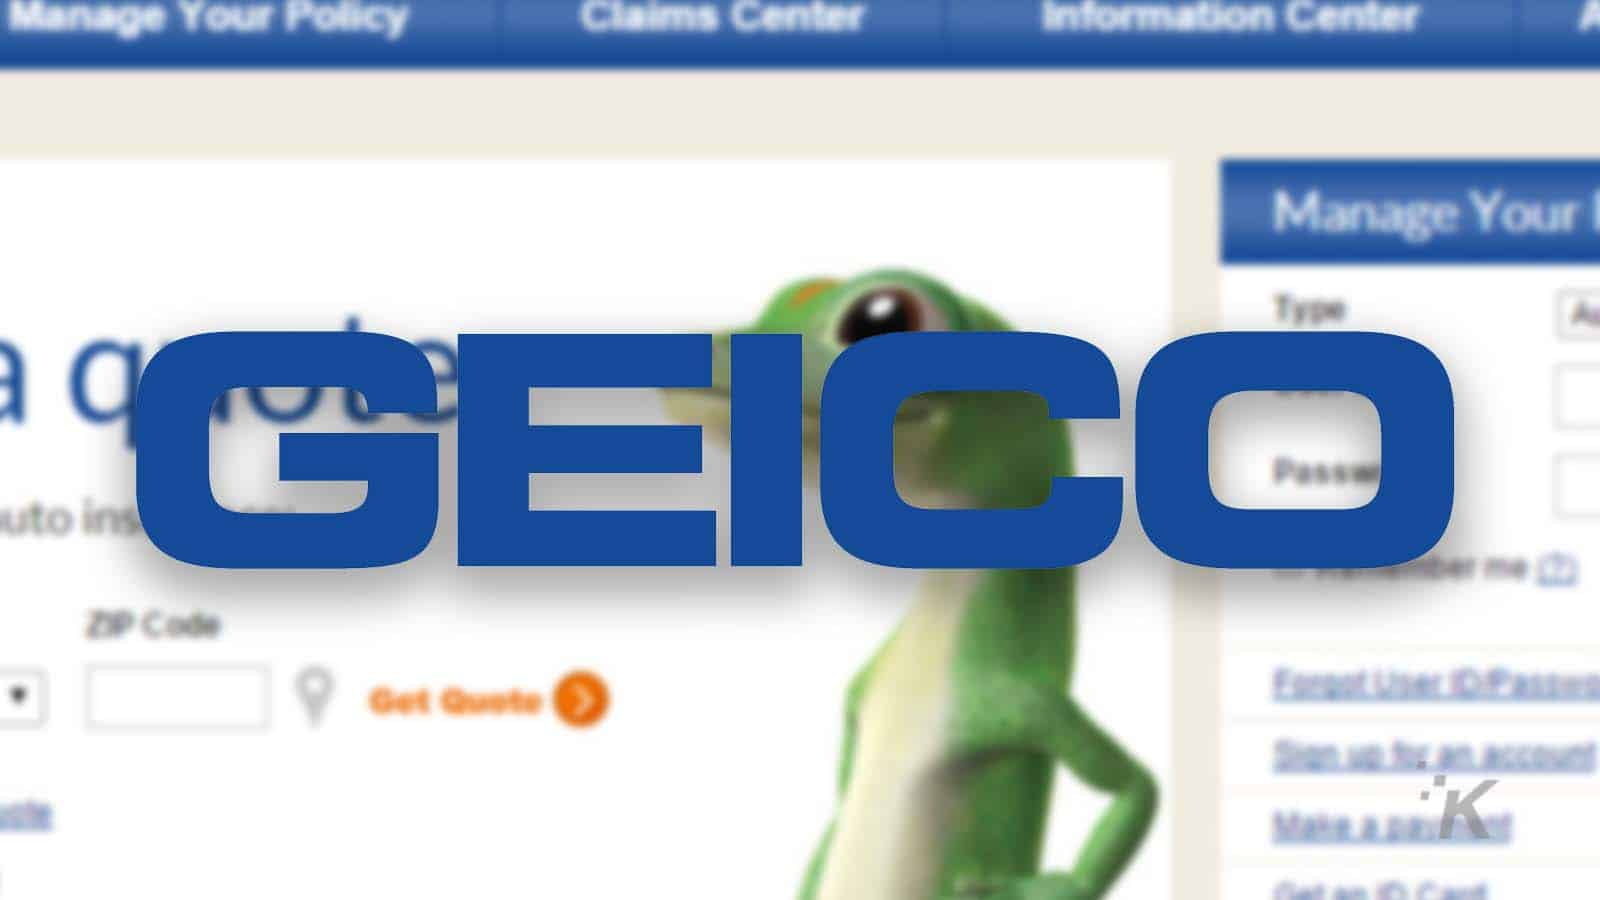 geico logo on blurred background